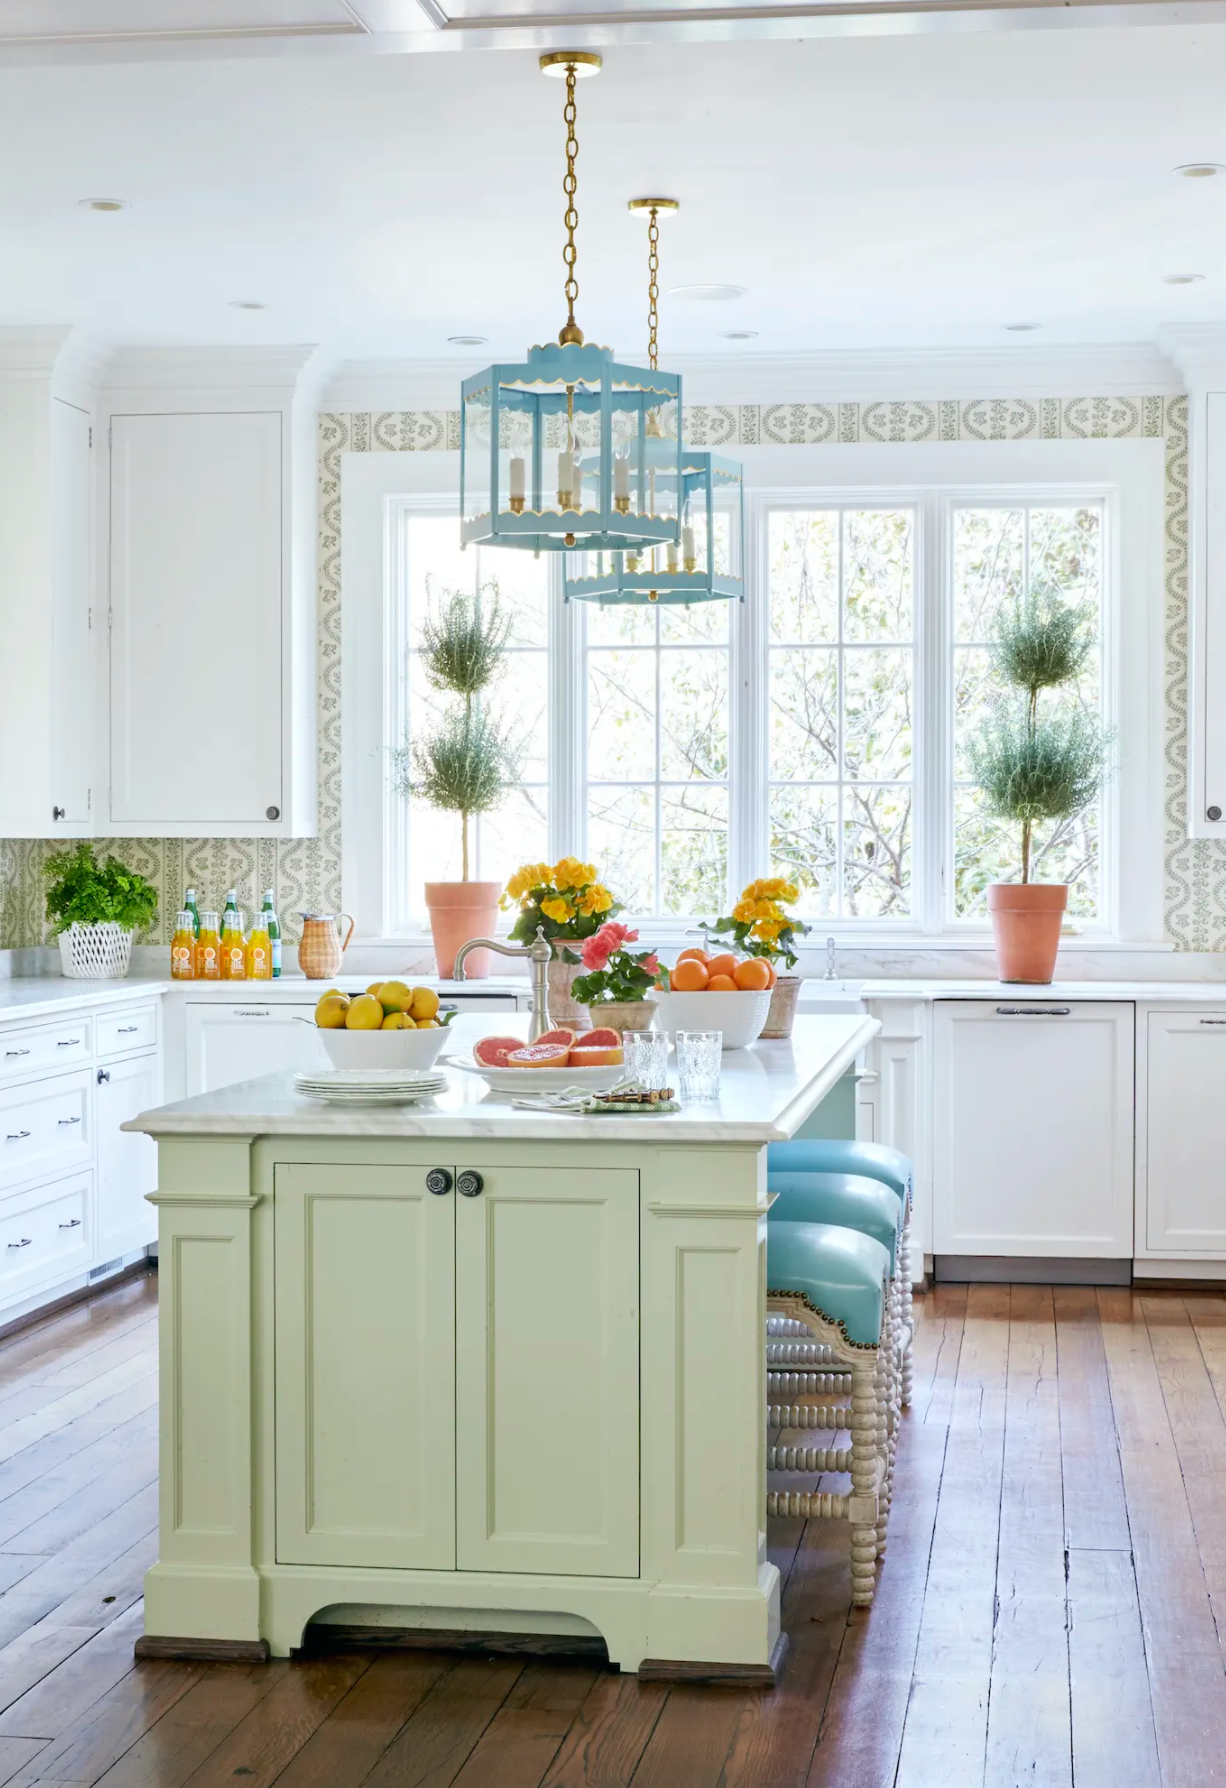 A Pair of Scalloped Lanterns in a Custom Color Over a Kitchen Island / Design by Sarah Bartholomew Interior Design / Photo Courtesy of Traditional Home Magazine